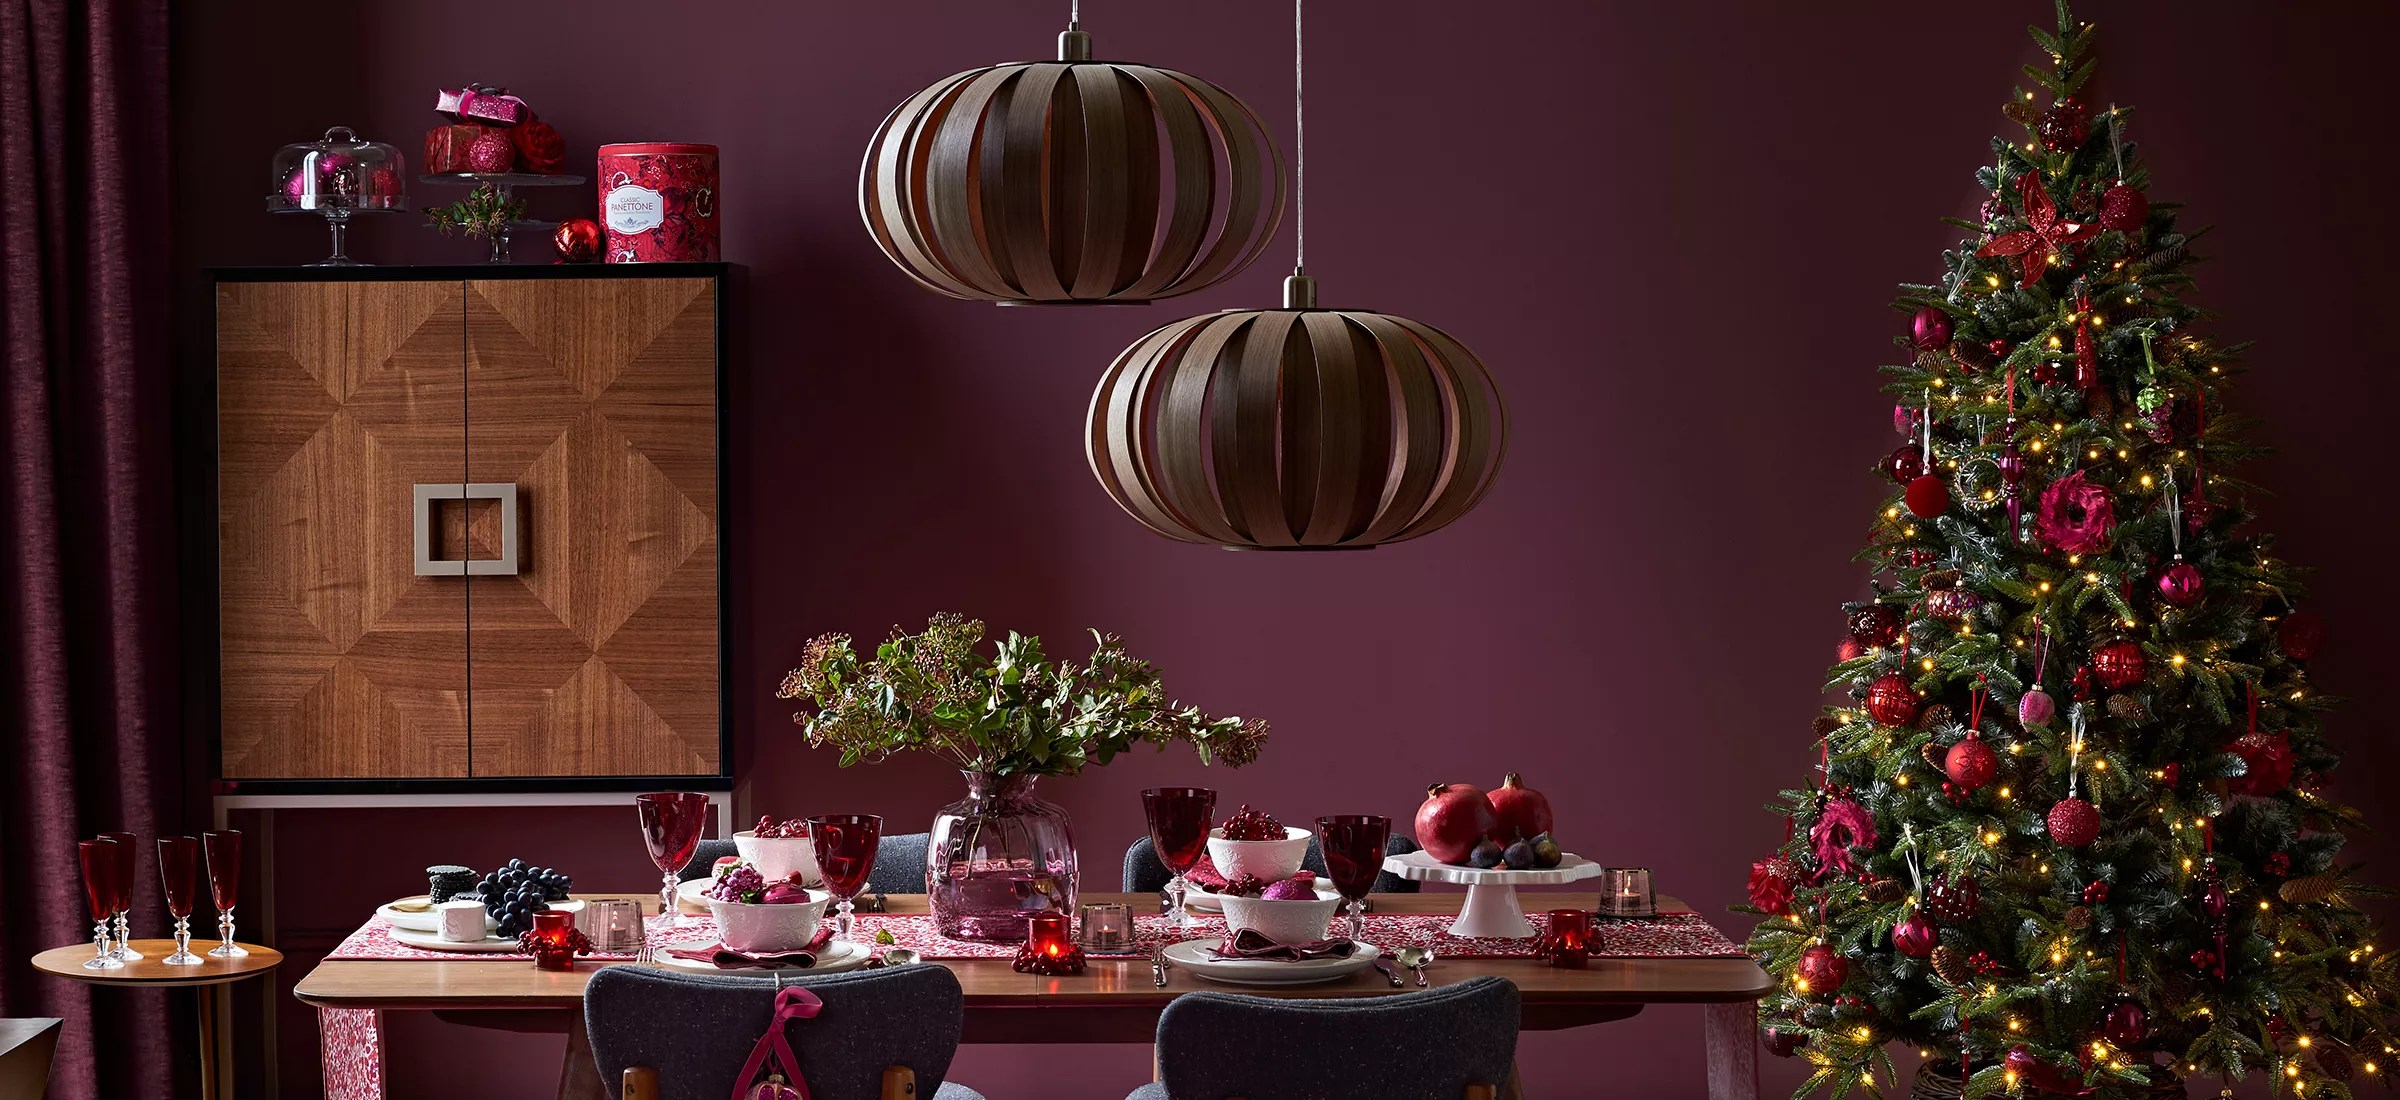 Wish Meuble Home Furniture Lighting John Lewis Partners